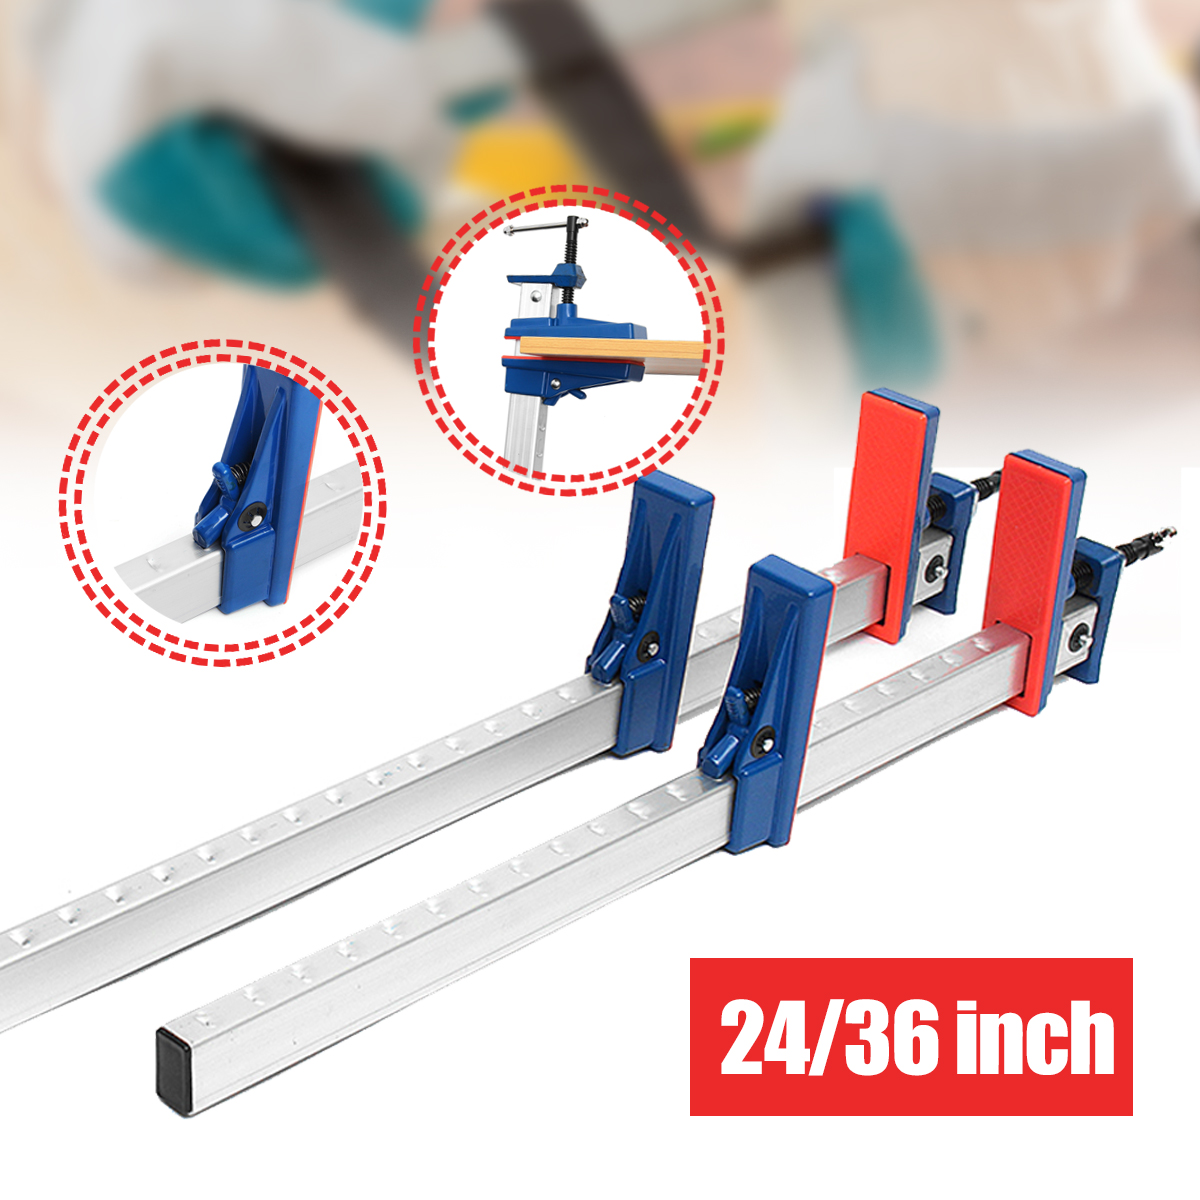 24/36 Inch Aluminum F-Clamp Bar Heavy Duty Holder Grip Release Parallel Adjustable Woodworking Tool